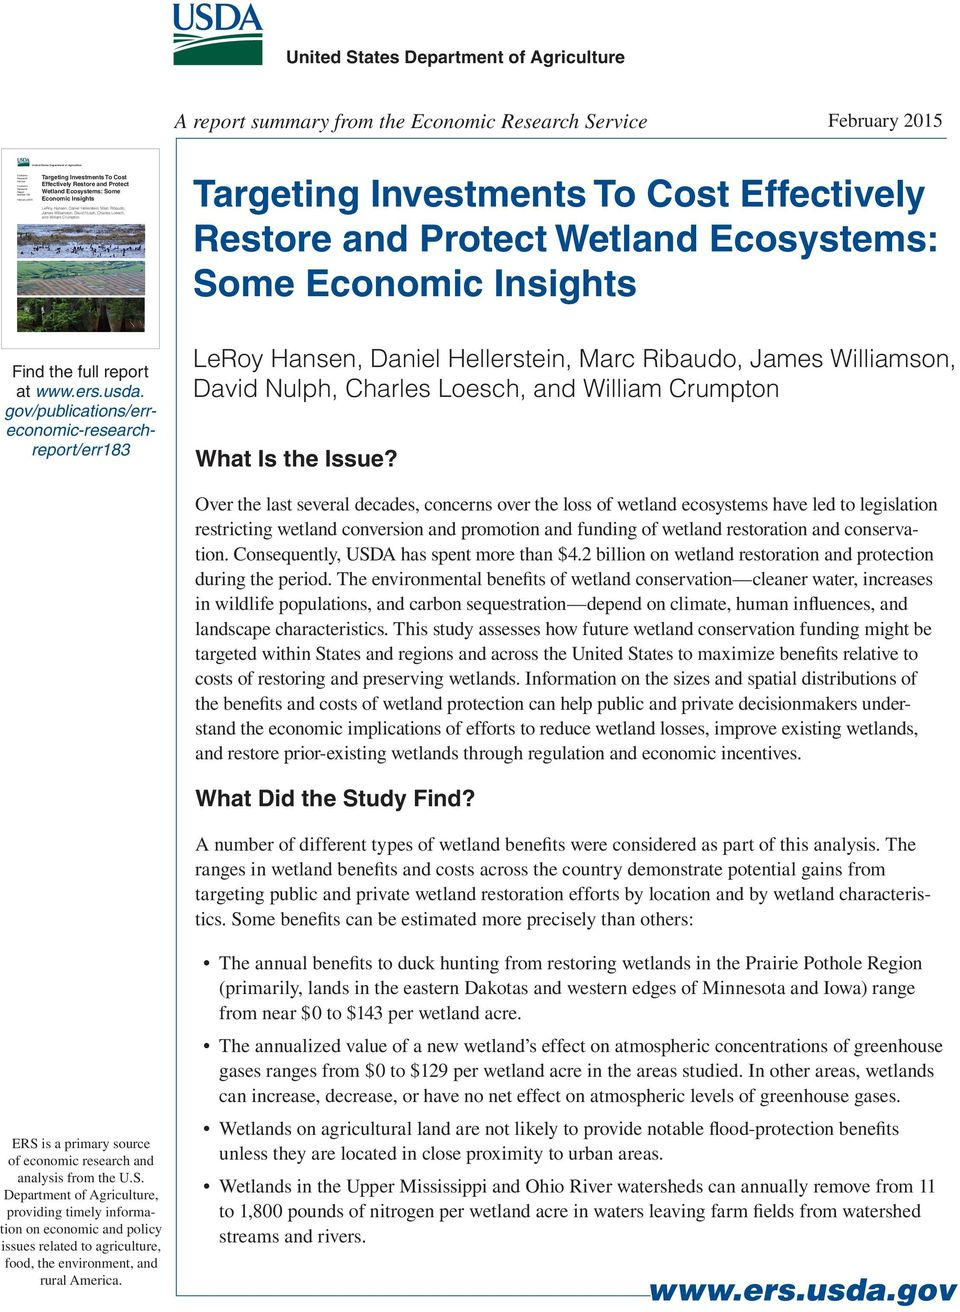 Nulph, Charles Loesch, and William Crumpton Targeting Investments To Cost Effectively Restore and Protect Wetland Ecosystems: Some Economic Insights Find the full report at www.ers.usda.